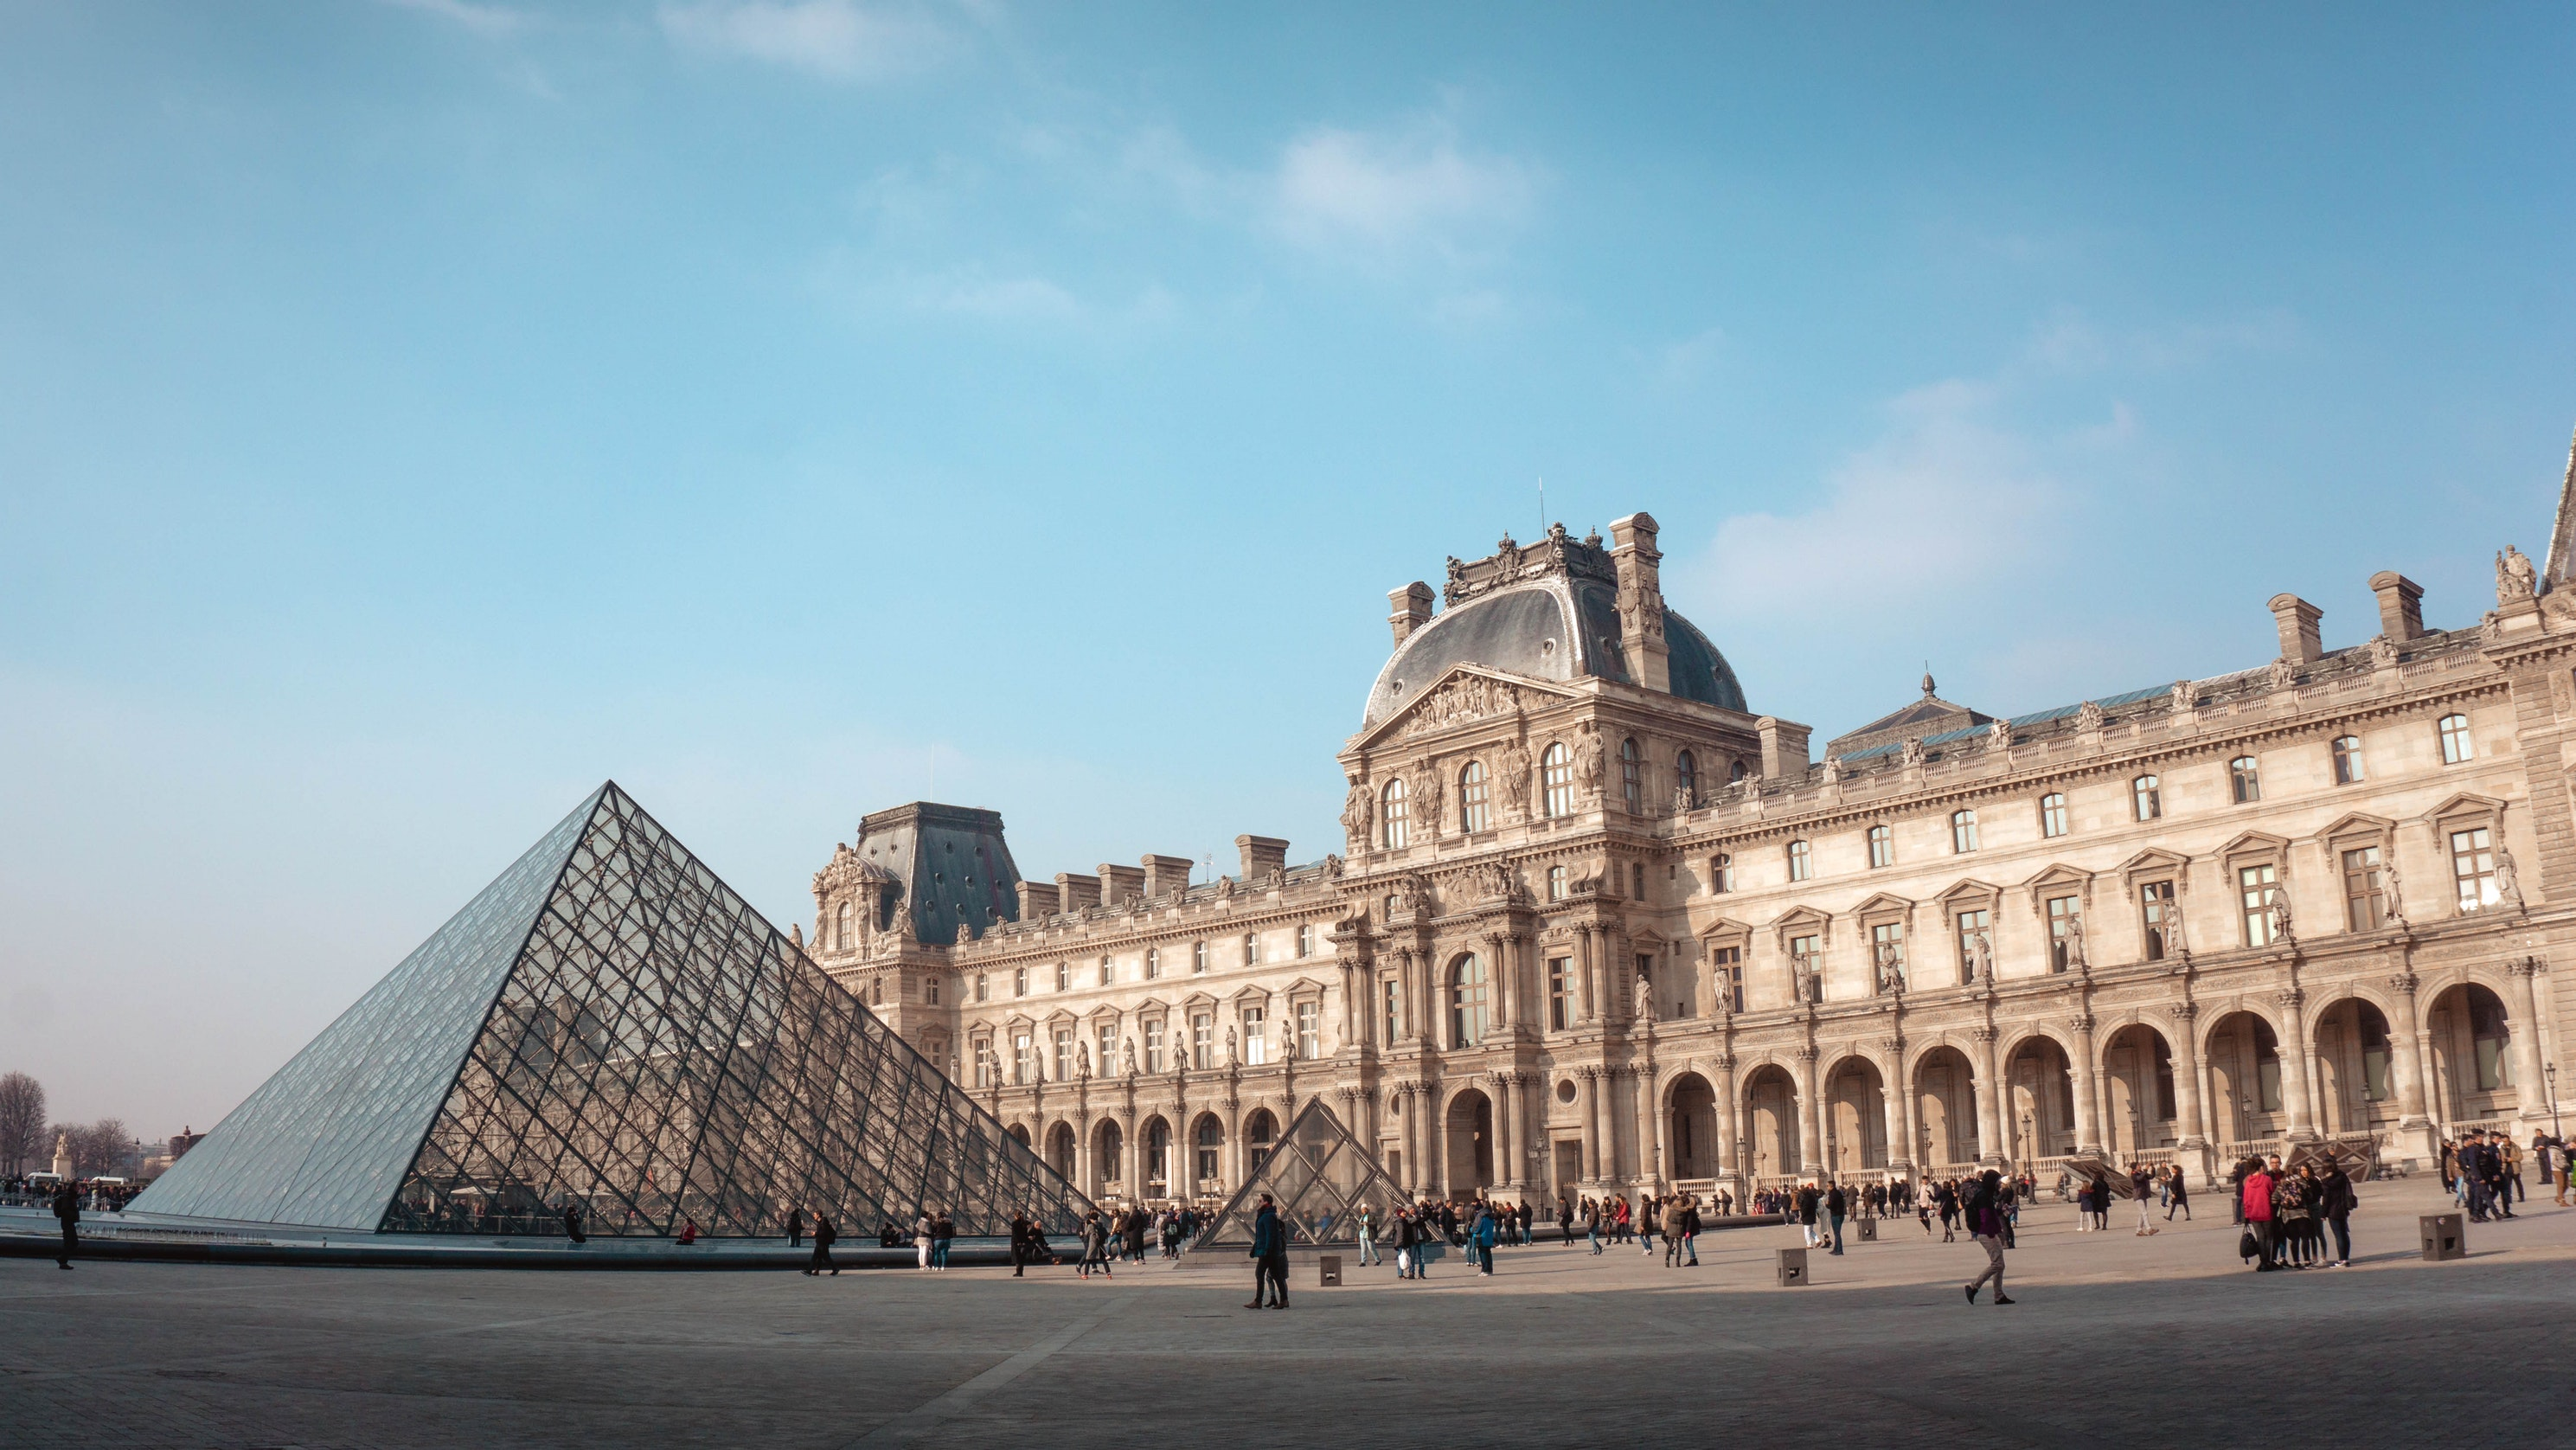 Why Have Airbnb And The Louvre Museum In Paris Partnered For A